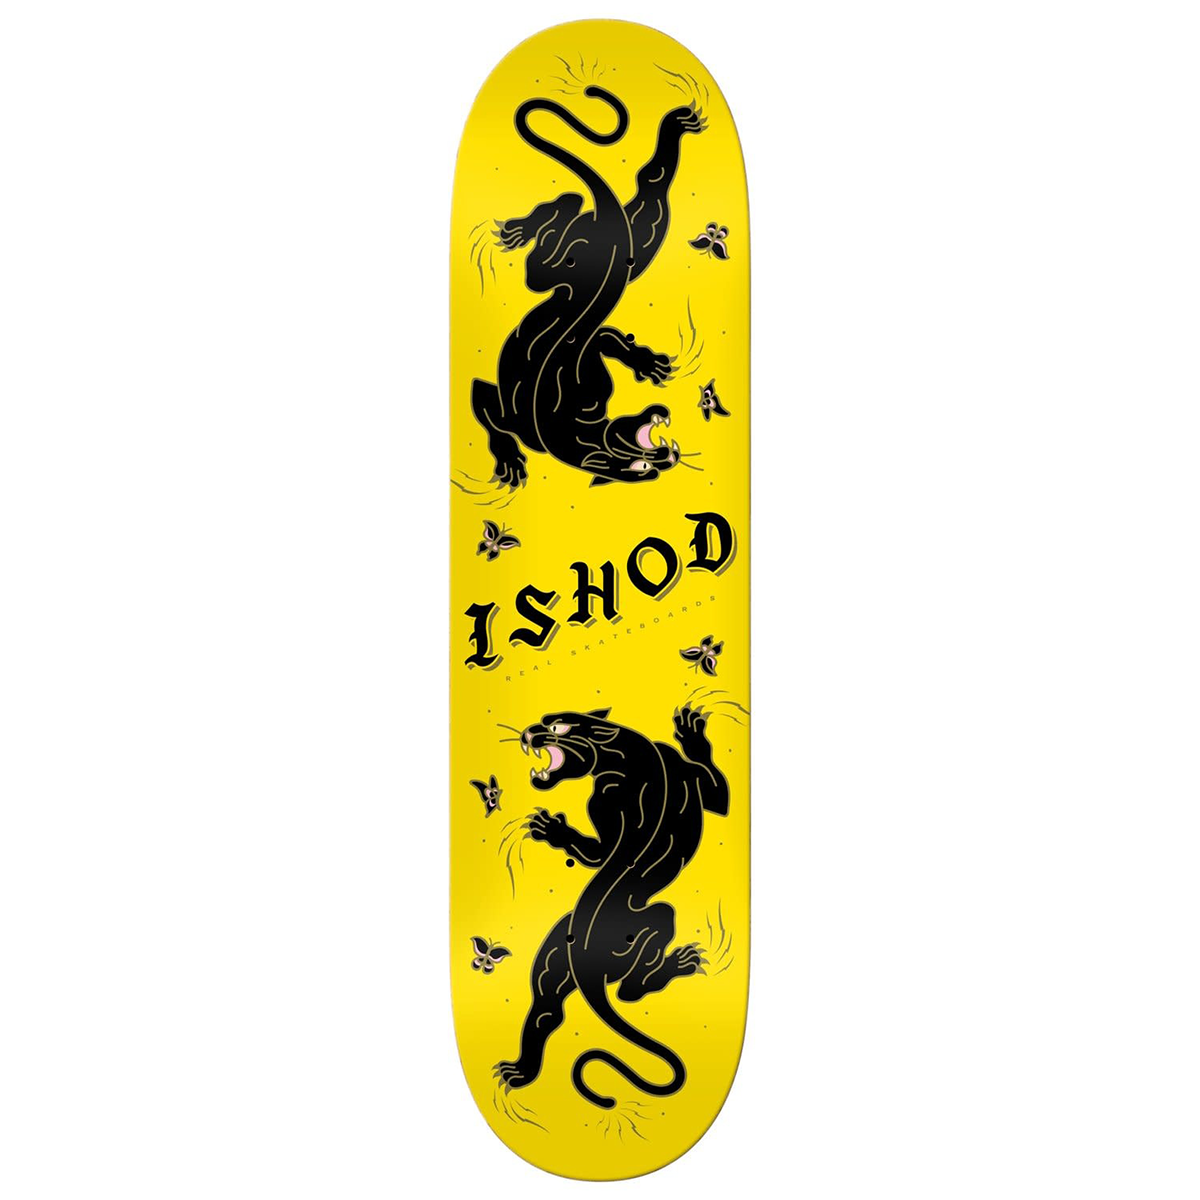 Real Ishod Cat Scratch Deck 8.0 - Yellow